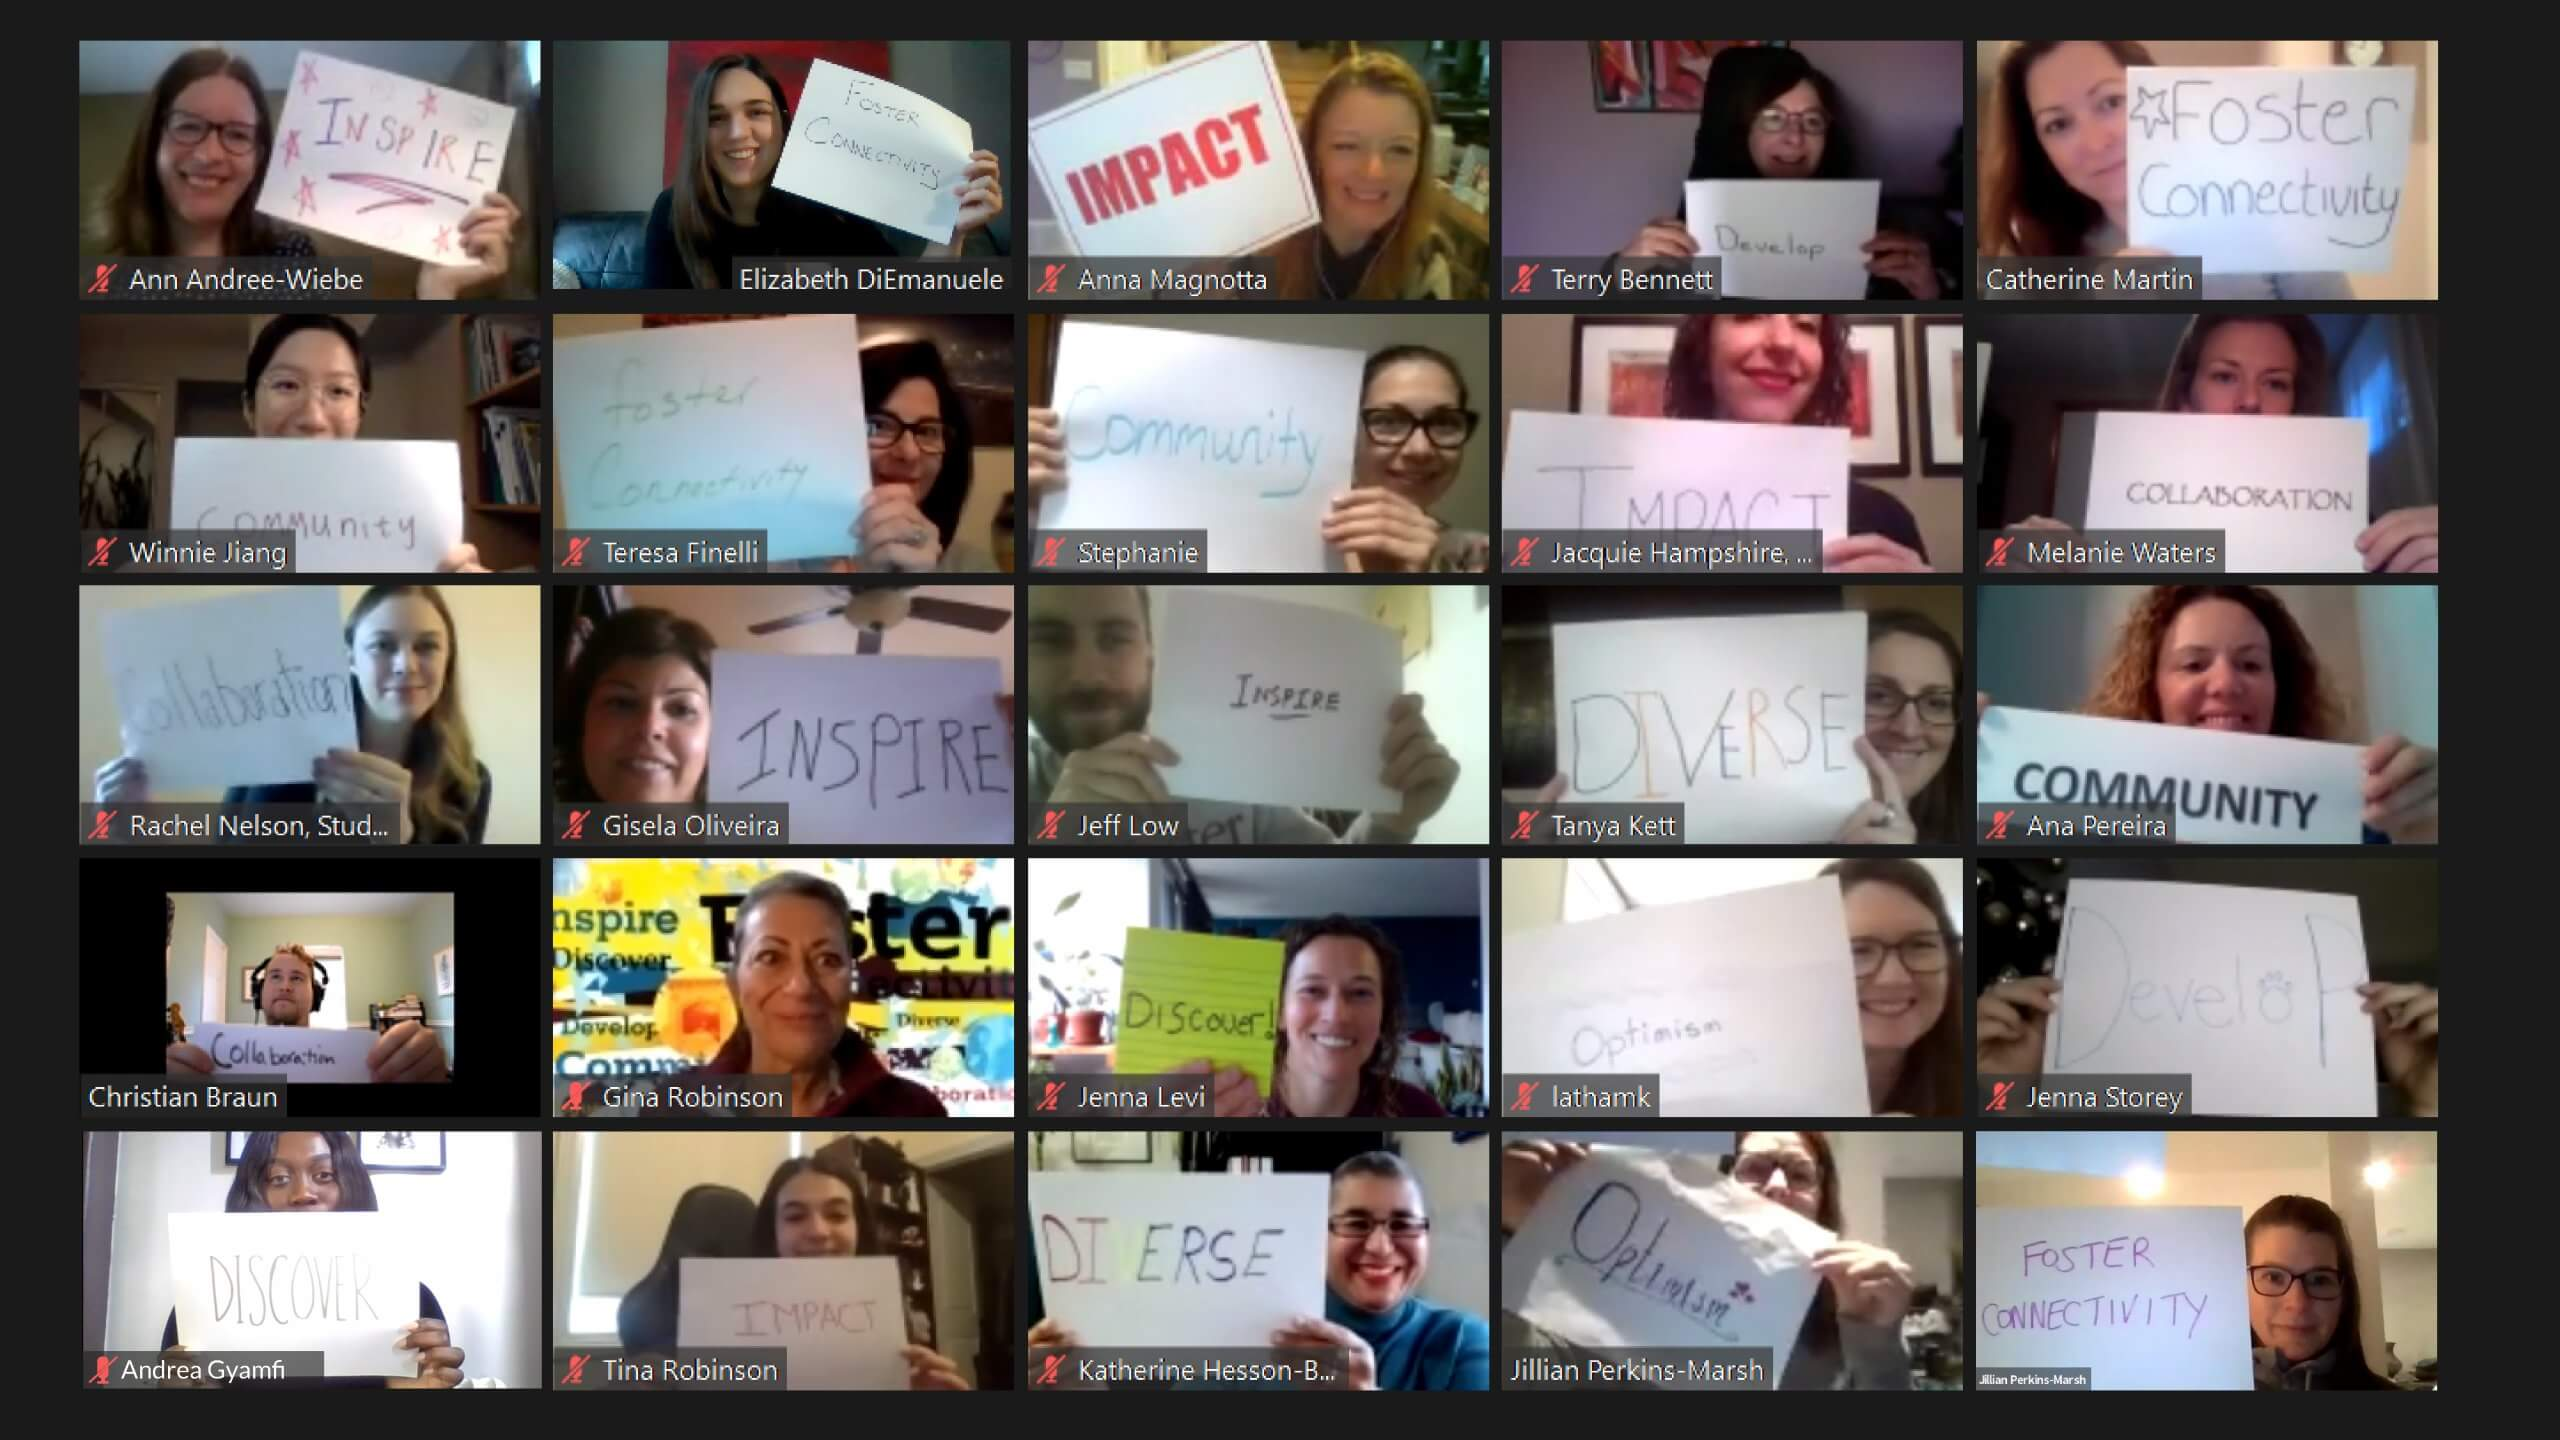 SSC team on Zoom holding signs (inspire, foster connectivity, impact, develop, impact, collaboration, community, diverse, optimism, discover)